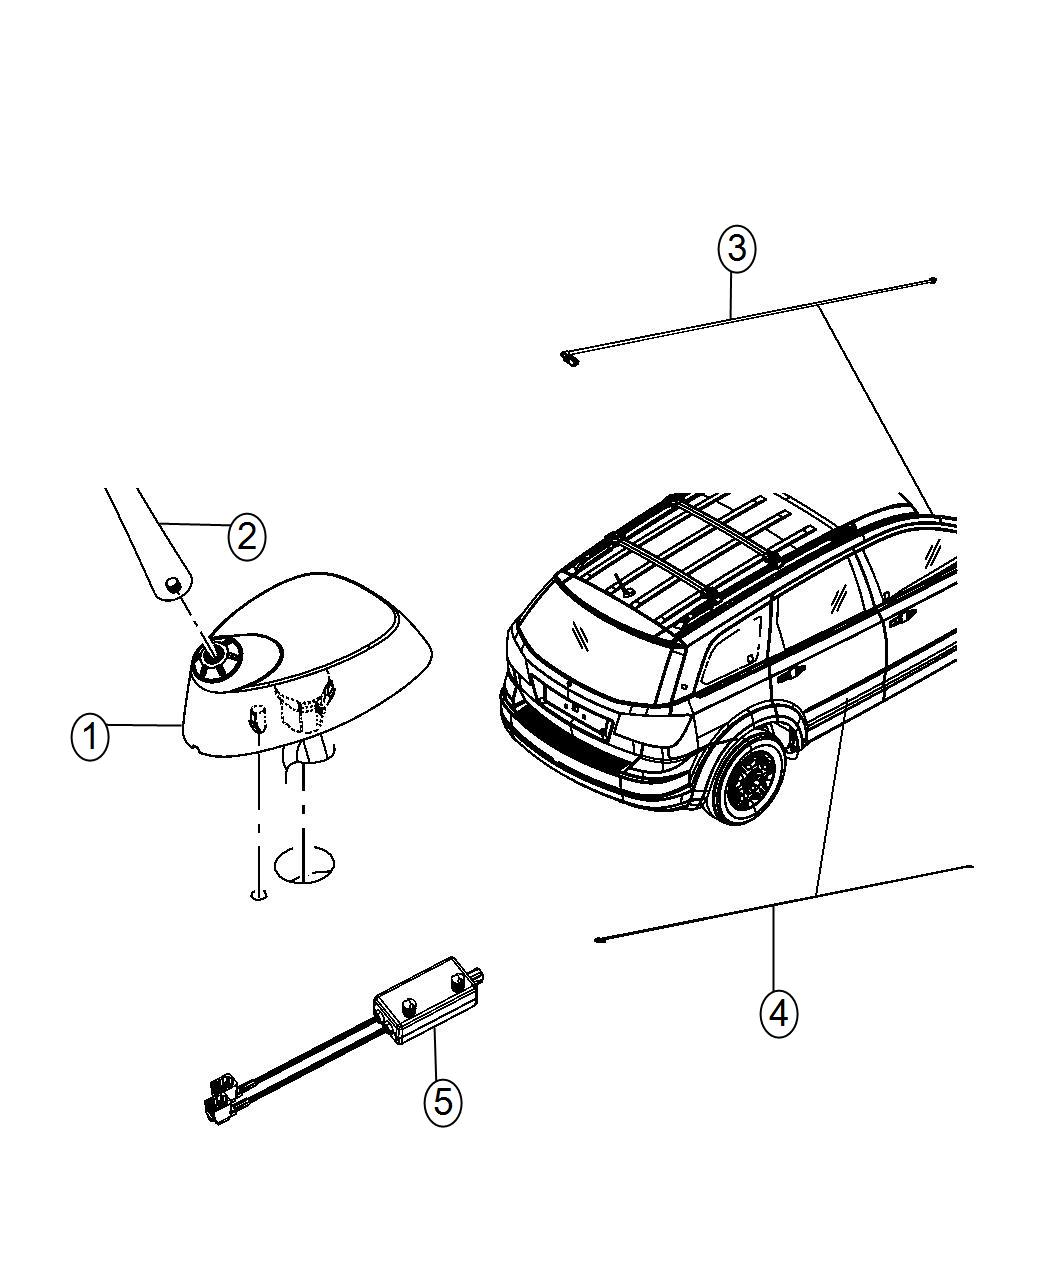 2013 Dodge Journey Antenna, cable. Base cable and bracket